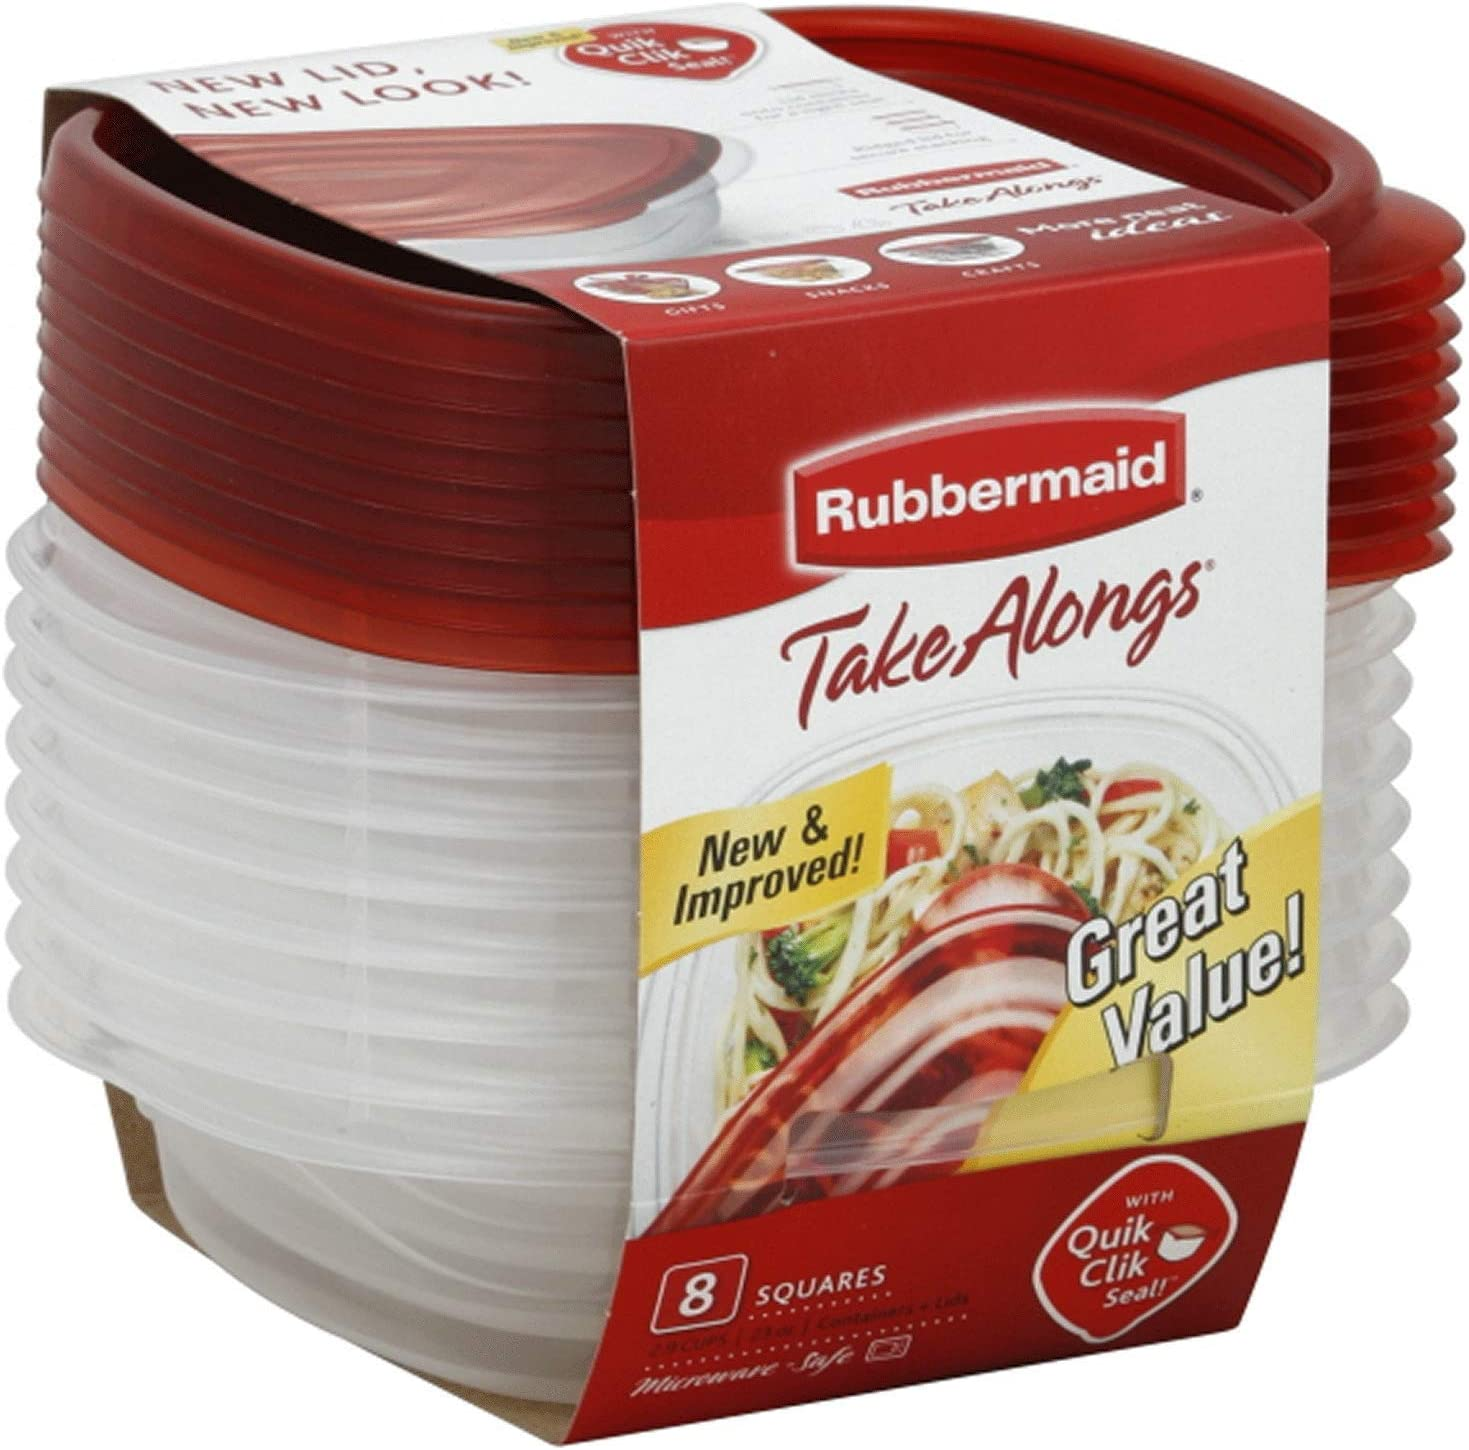 Rubbermaid 7F58 8-Piece TakeAlongs Food Storage Container Set, Sandwich, Red